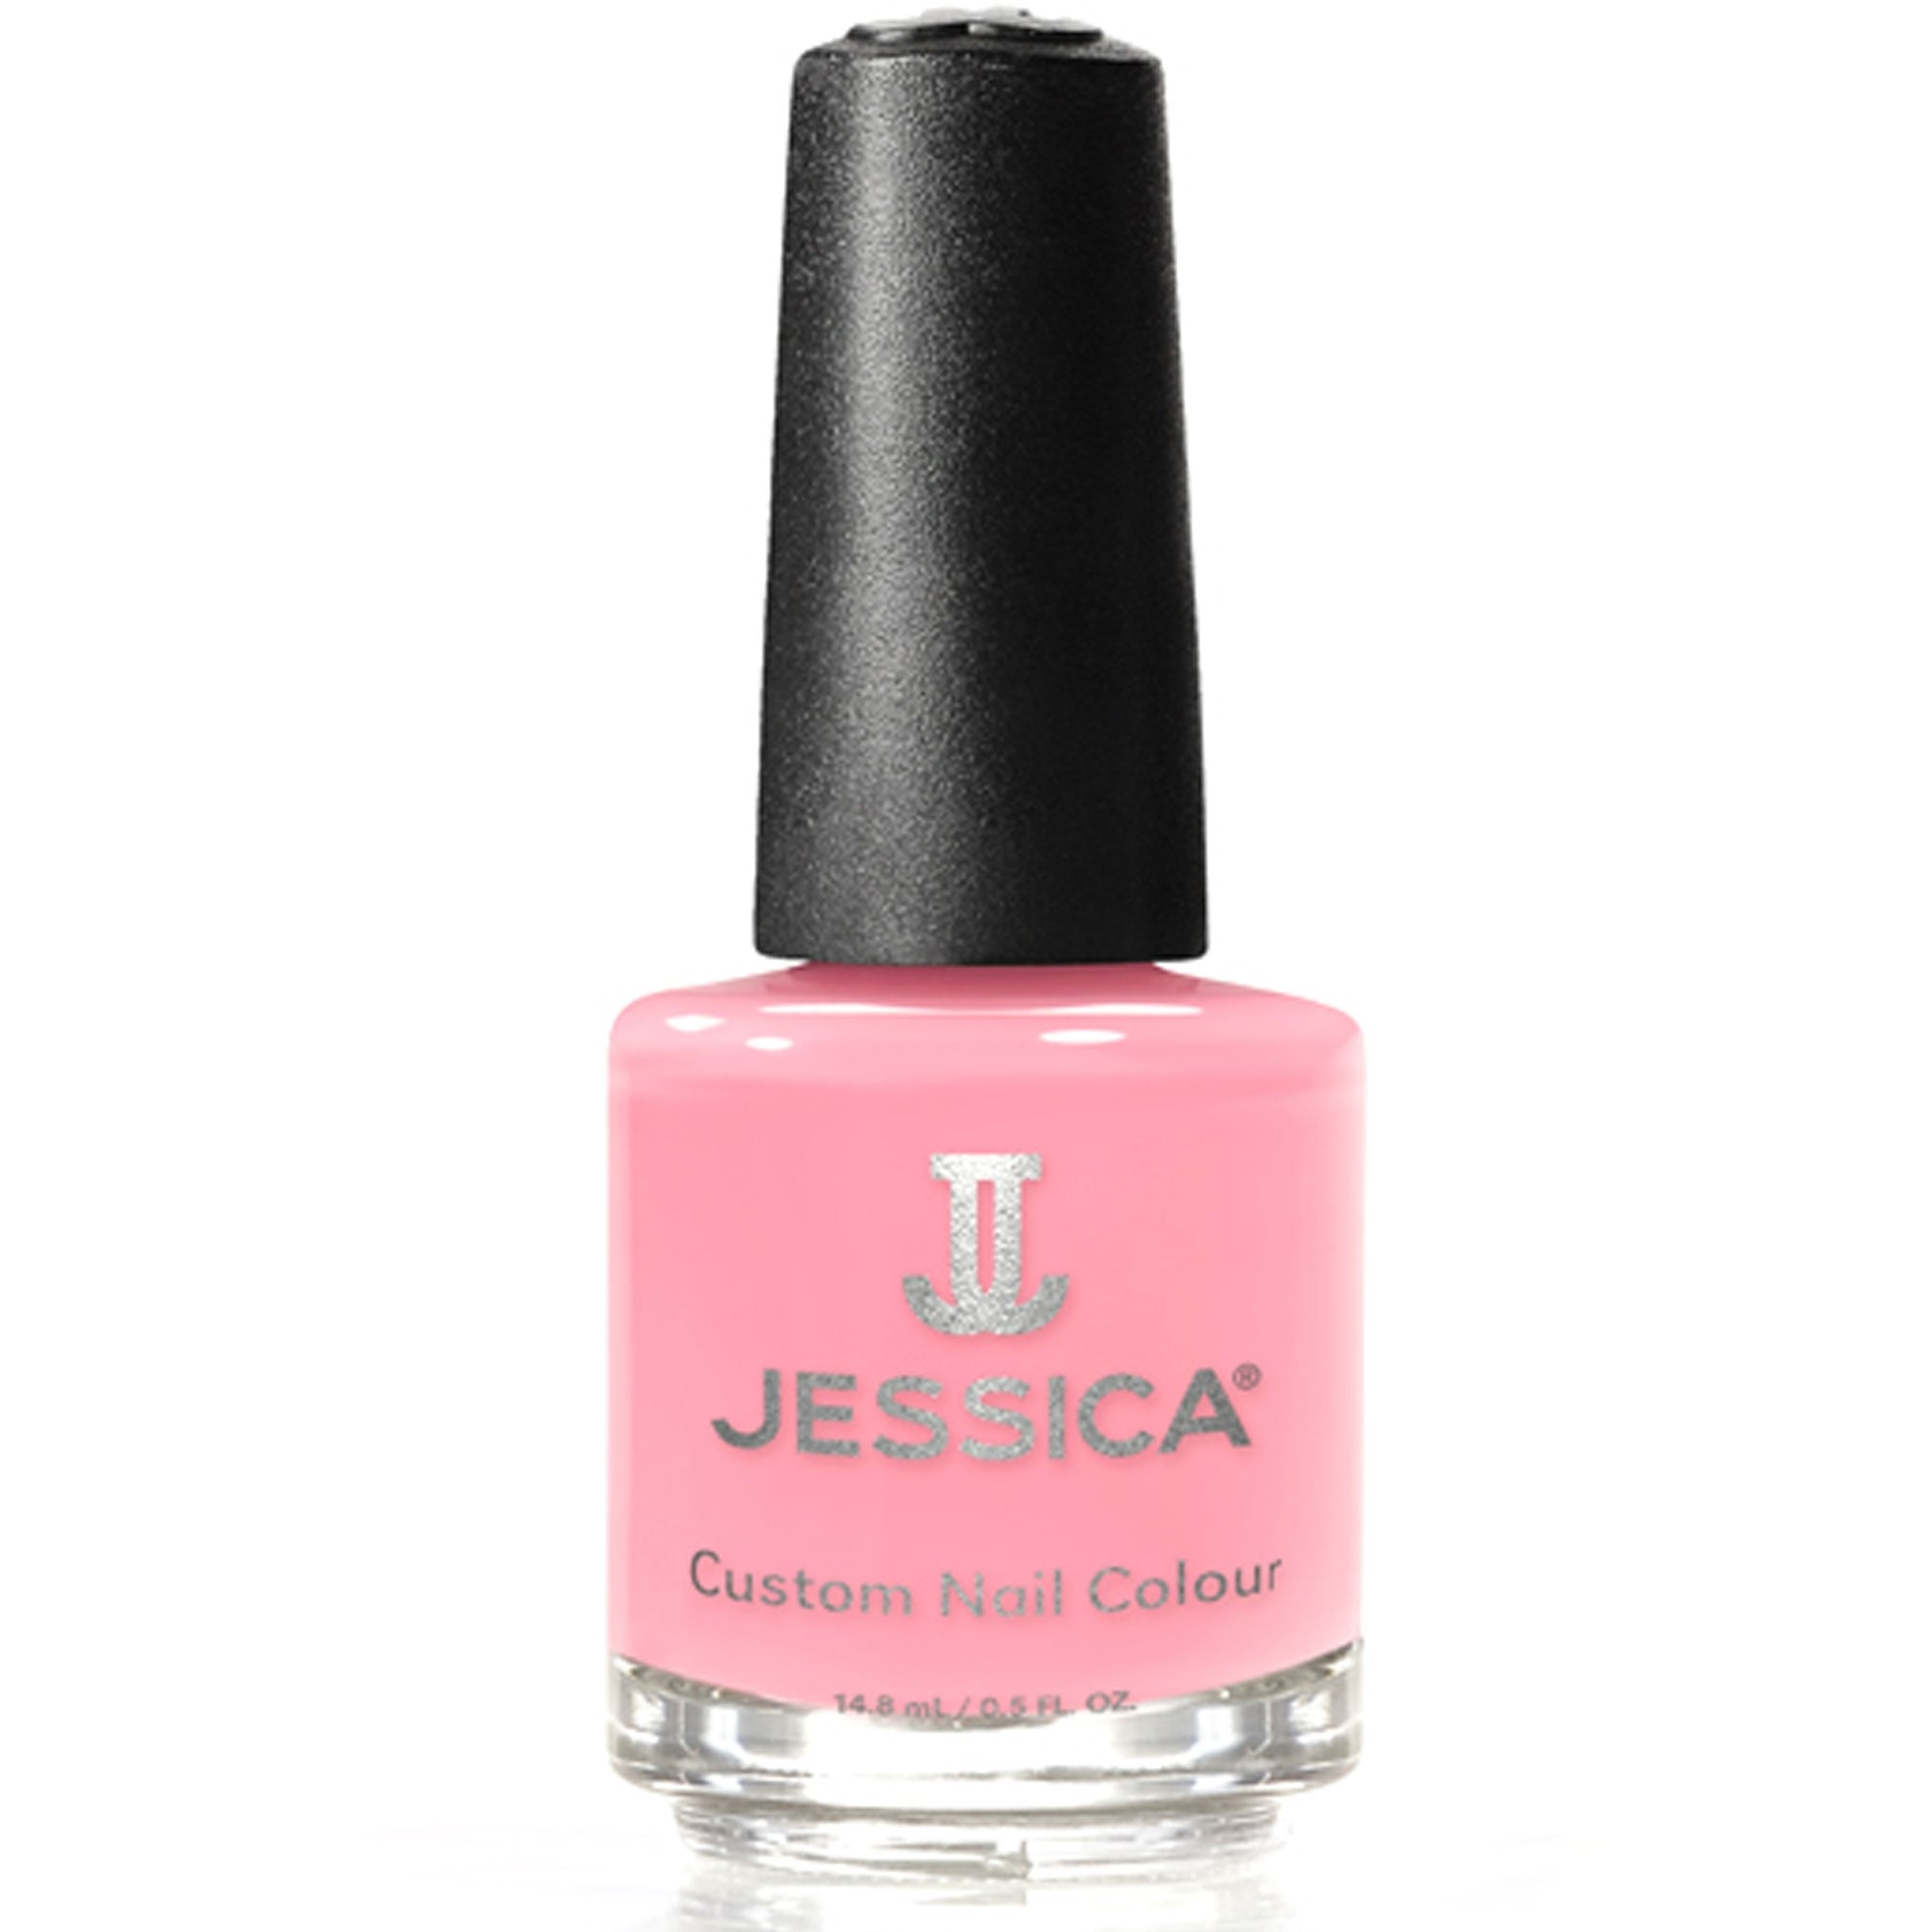 Jessica Flirtation Nail Polish is available at Nail Polish Direct